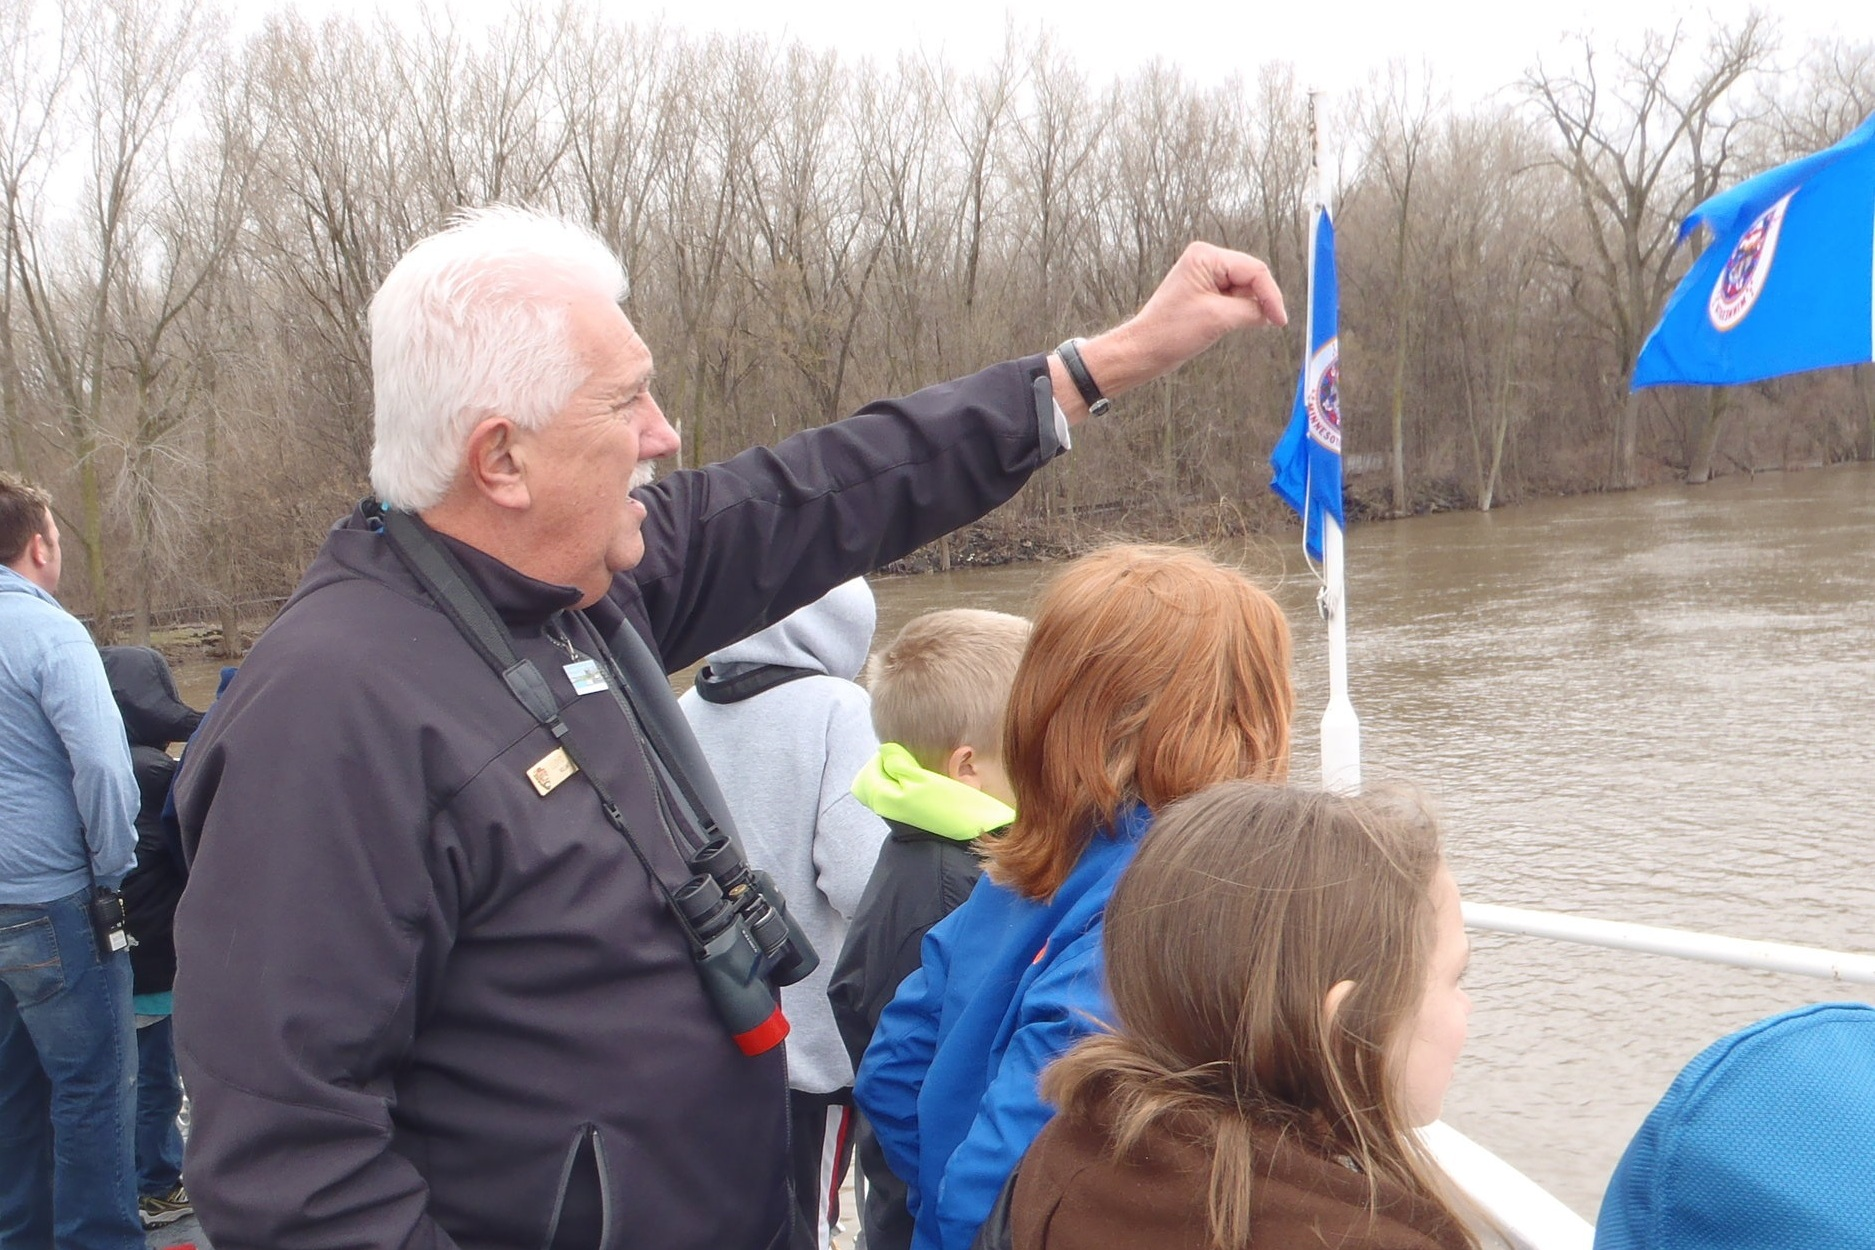 Birds Station - Volunteers help students use binocular and spot birds along the river. No experience is necessary, but an enthusiasm for birds and a willingness to facilitate student learning is a must.